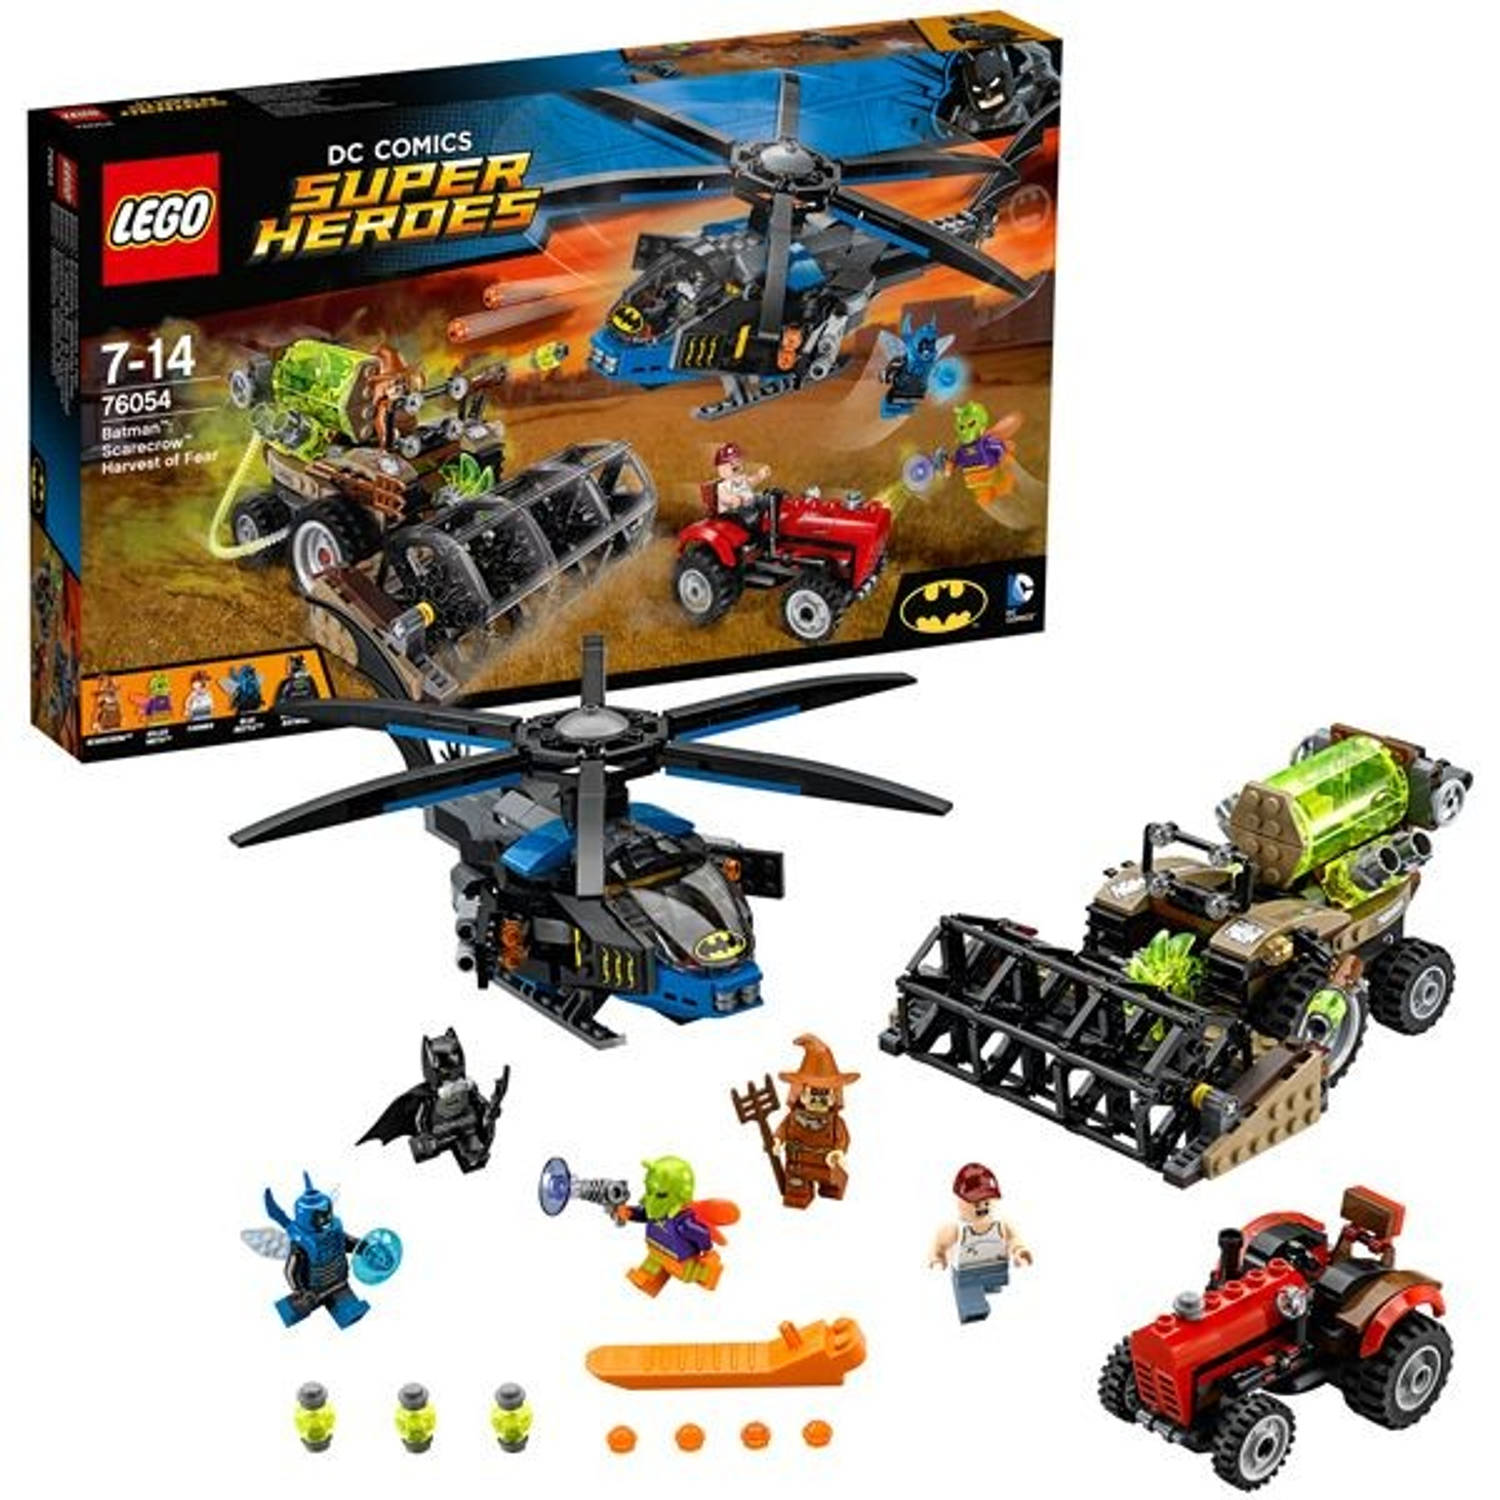 Lego super heroes 76054 batman: scarecrow, harvest of fear